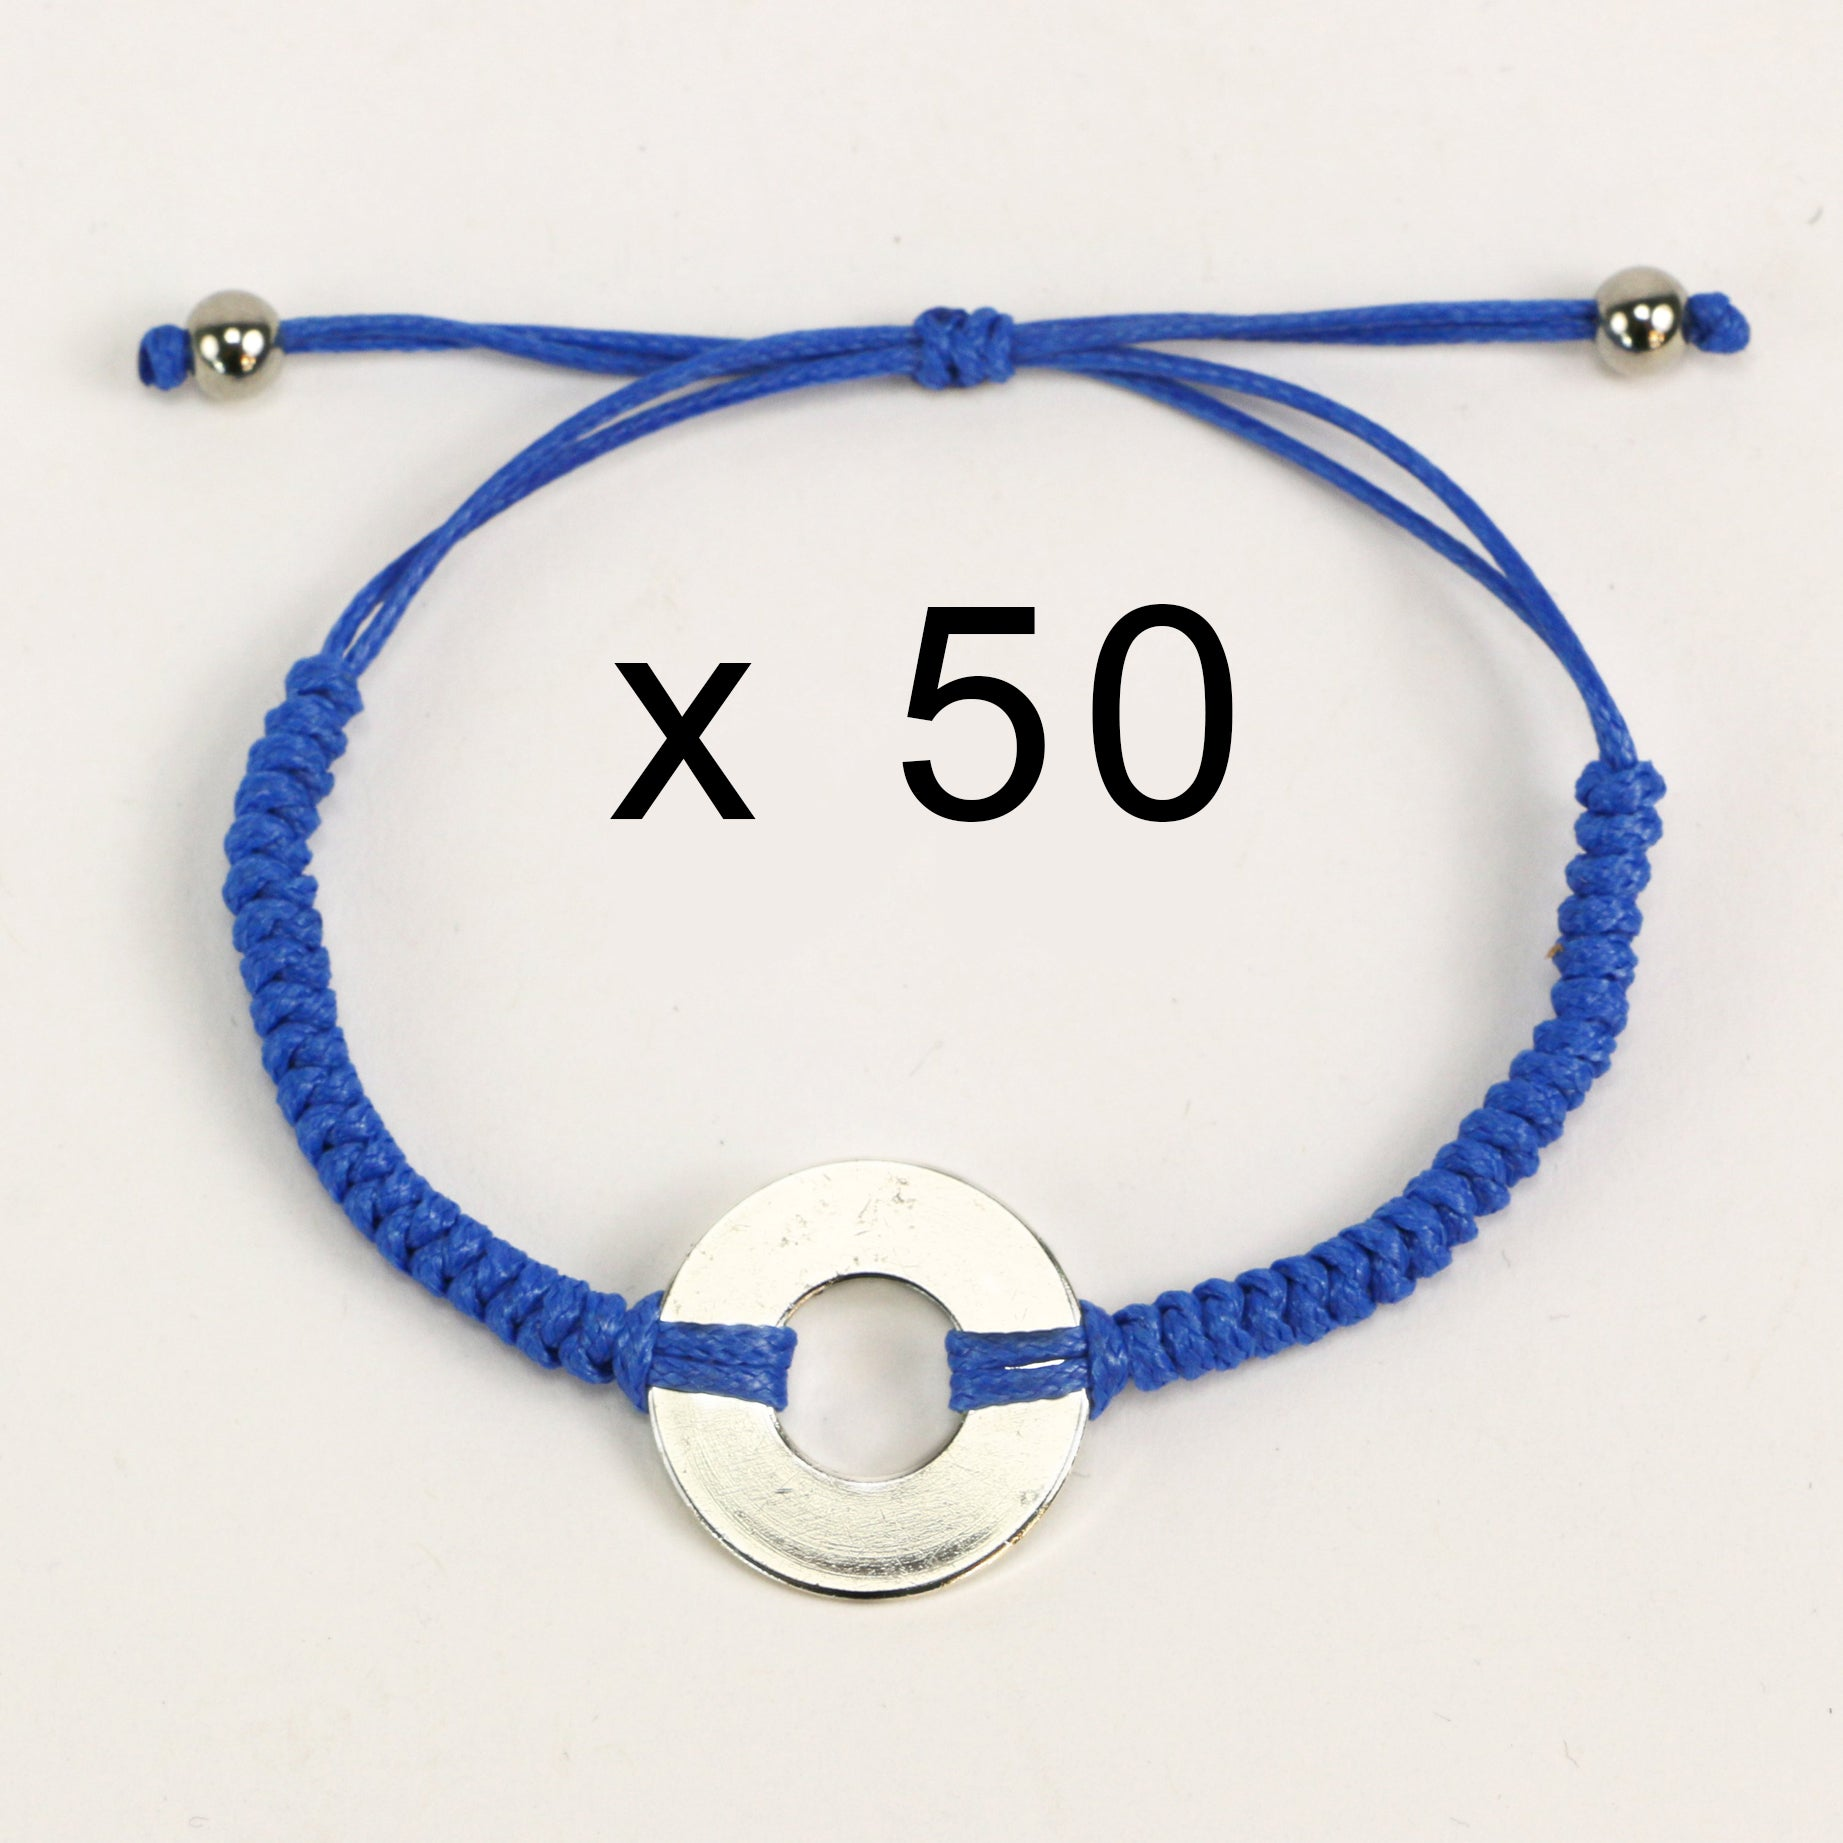 MyIntent Refill Round Bracelets set of 50 in Blue with Silver Tokens